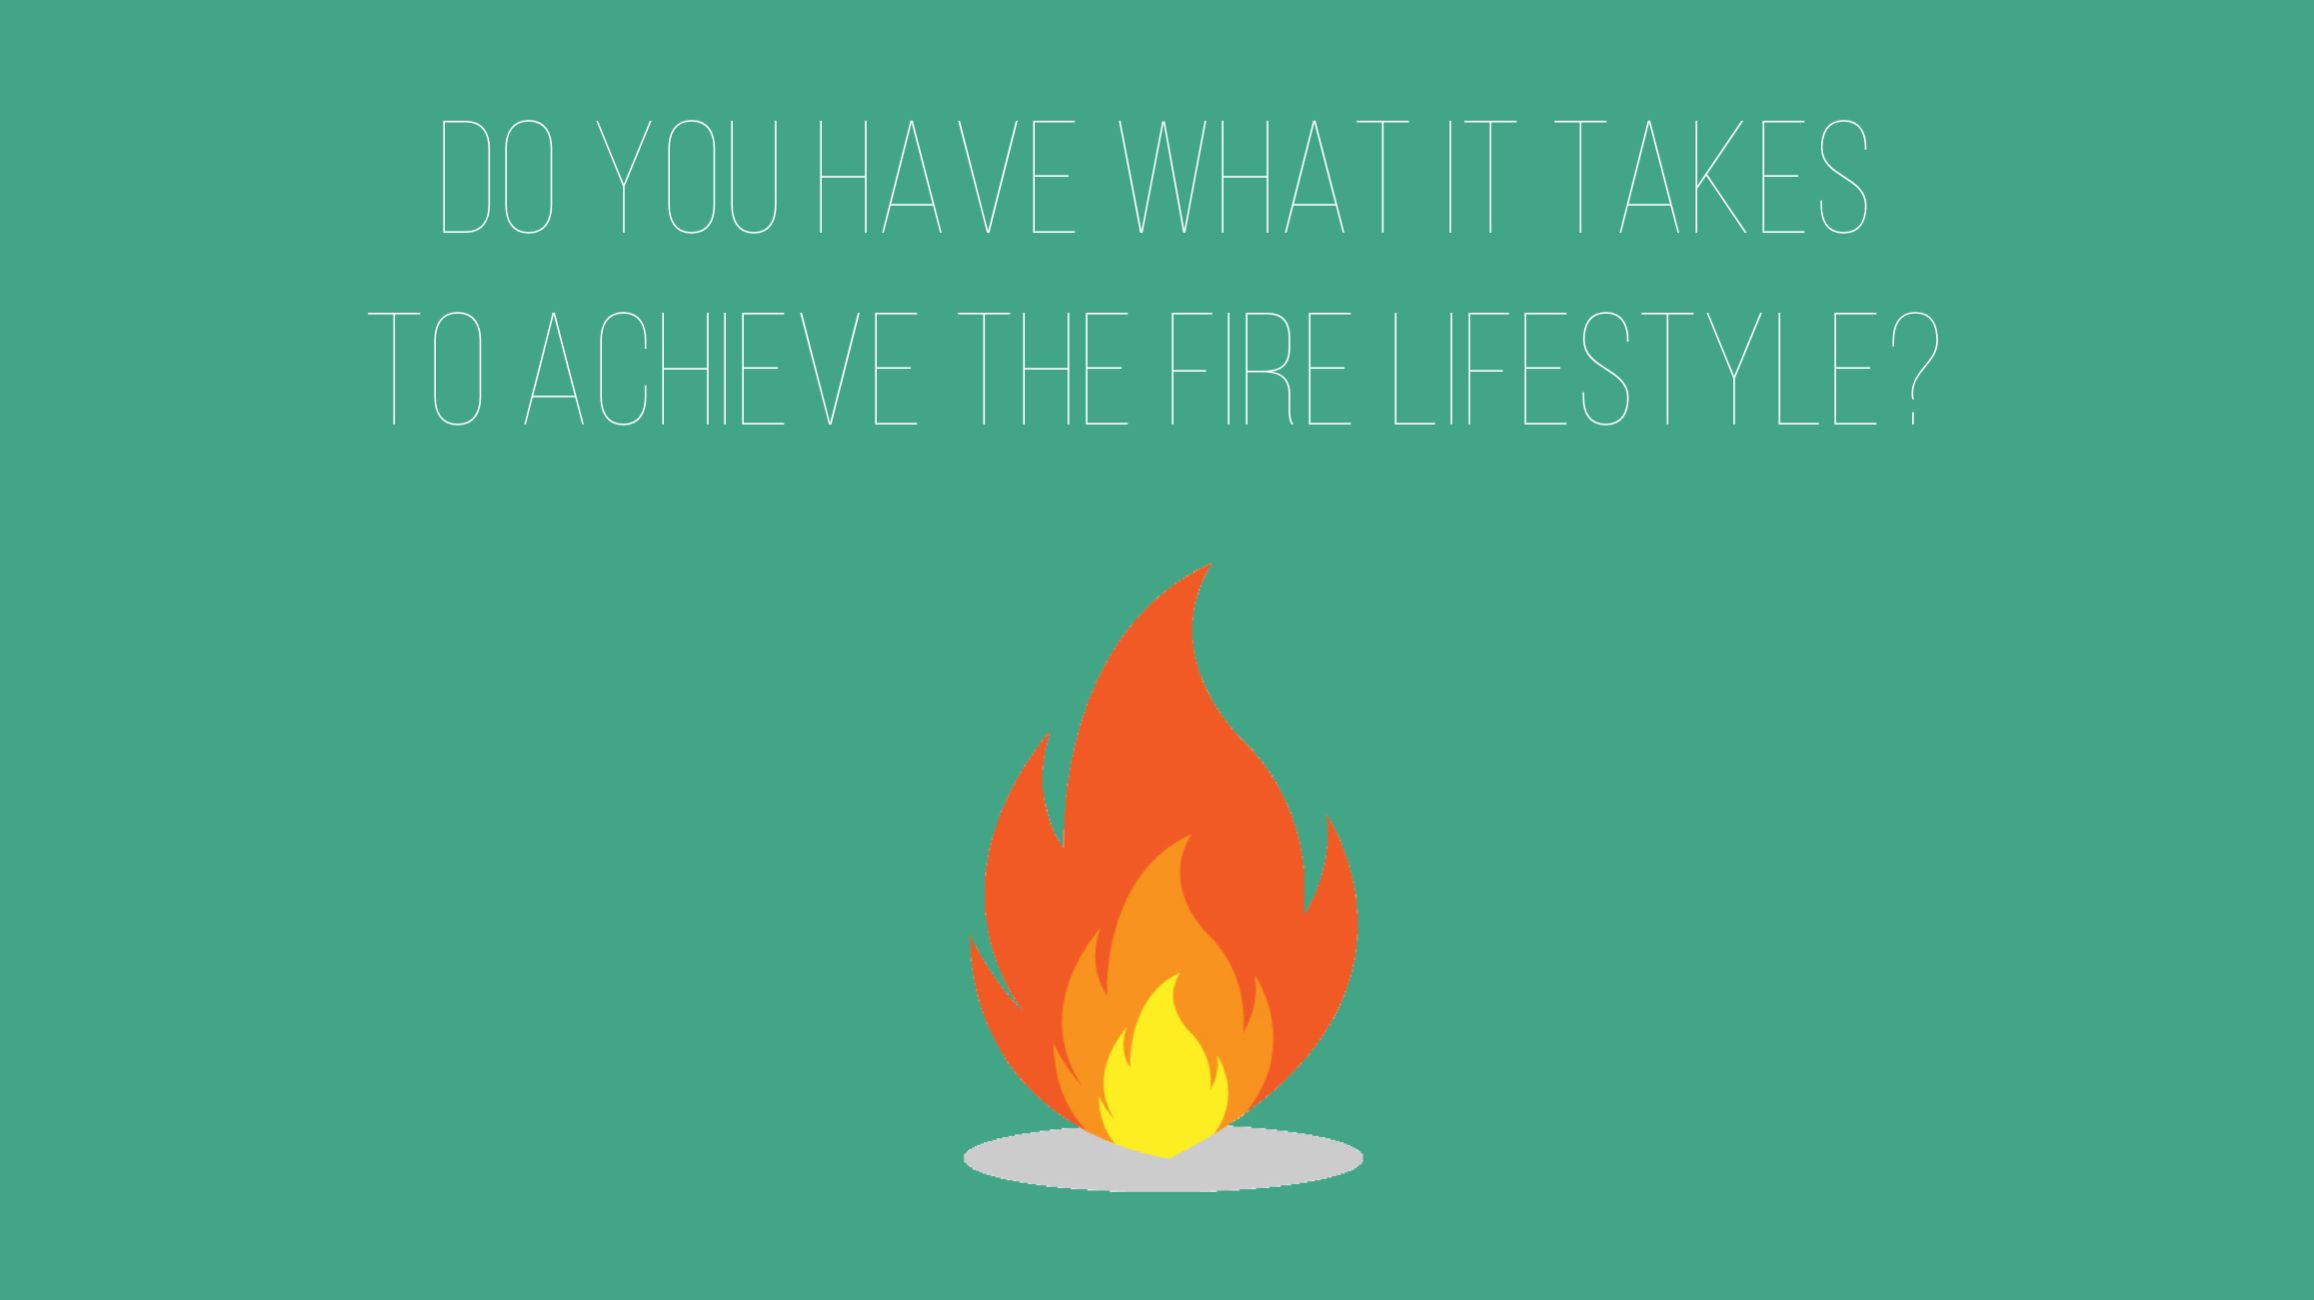 Do you have what it takes to achieve the FIRE lifestyle?